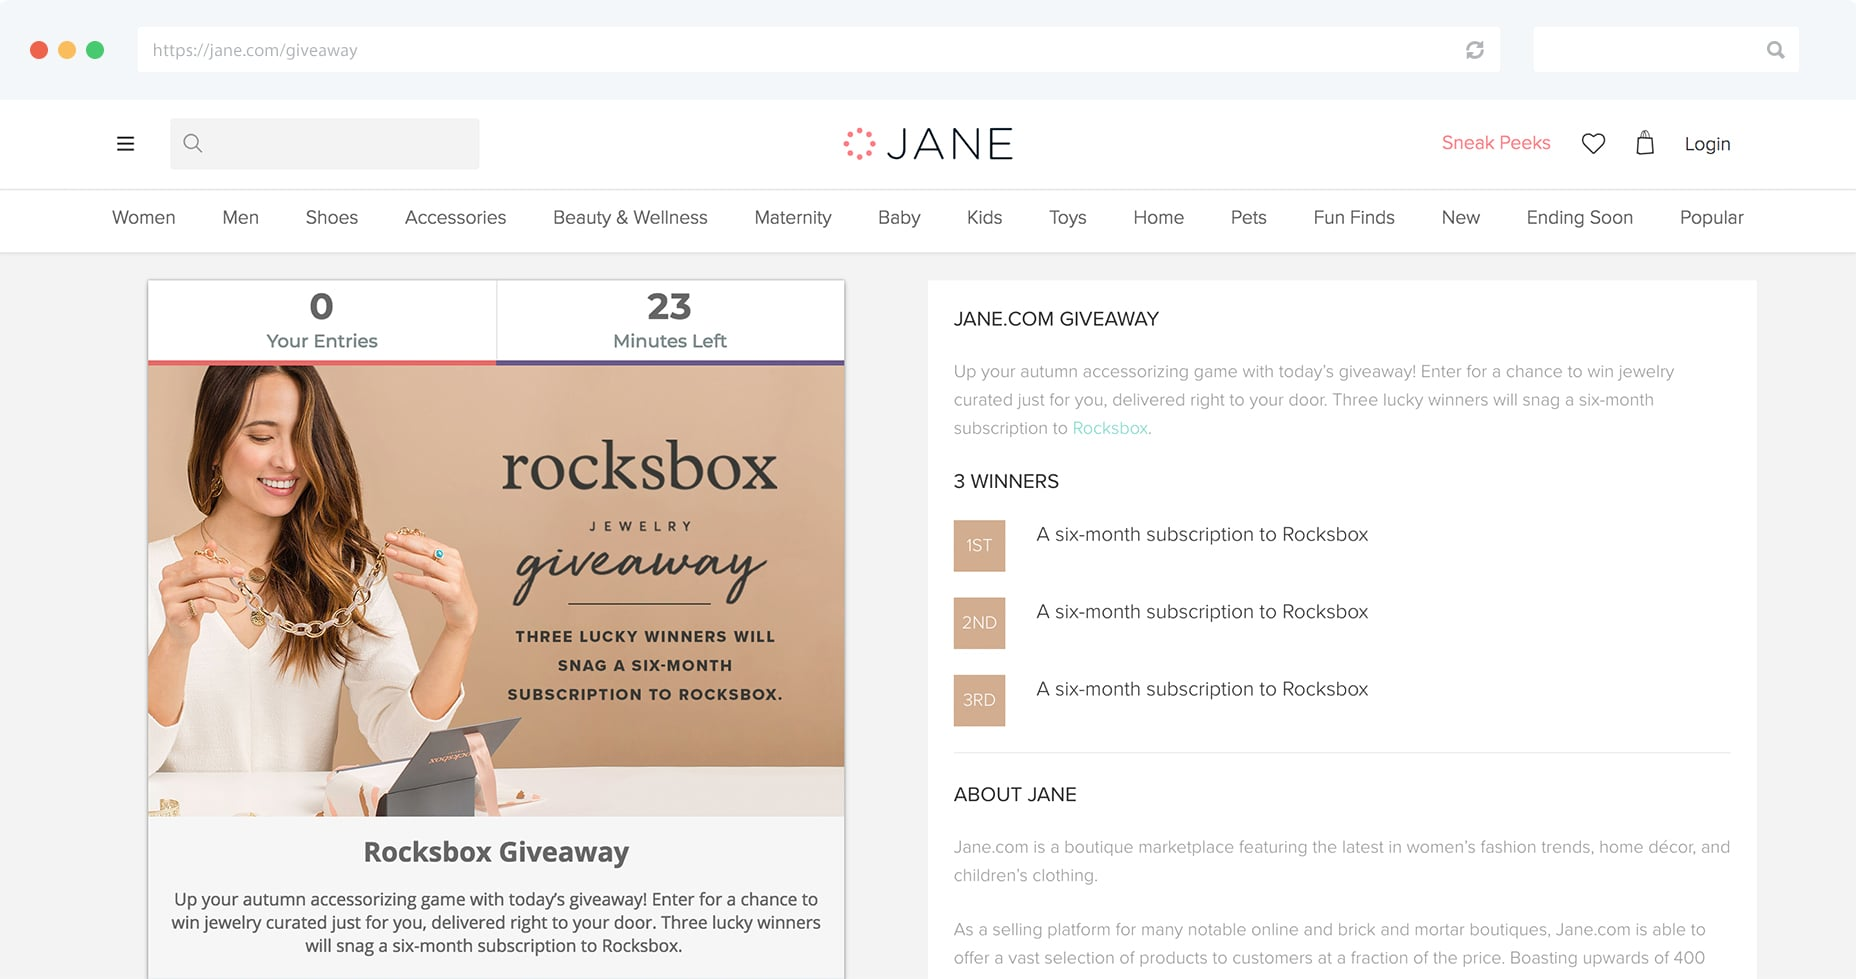 Jane.com has a dedicated landing page for their Gleam Giveaways